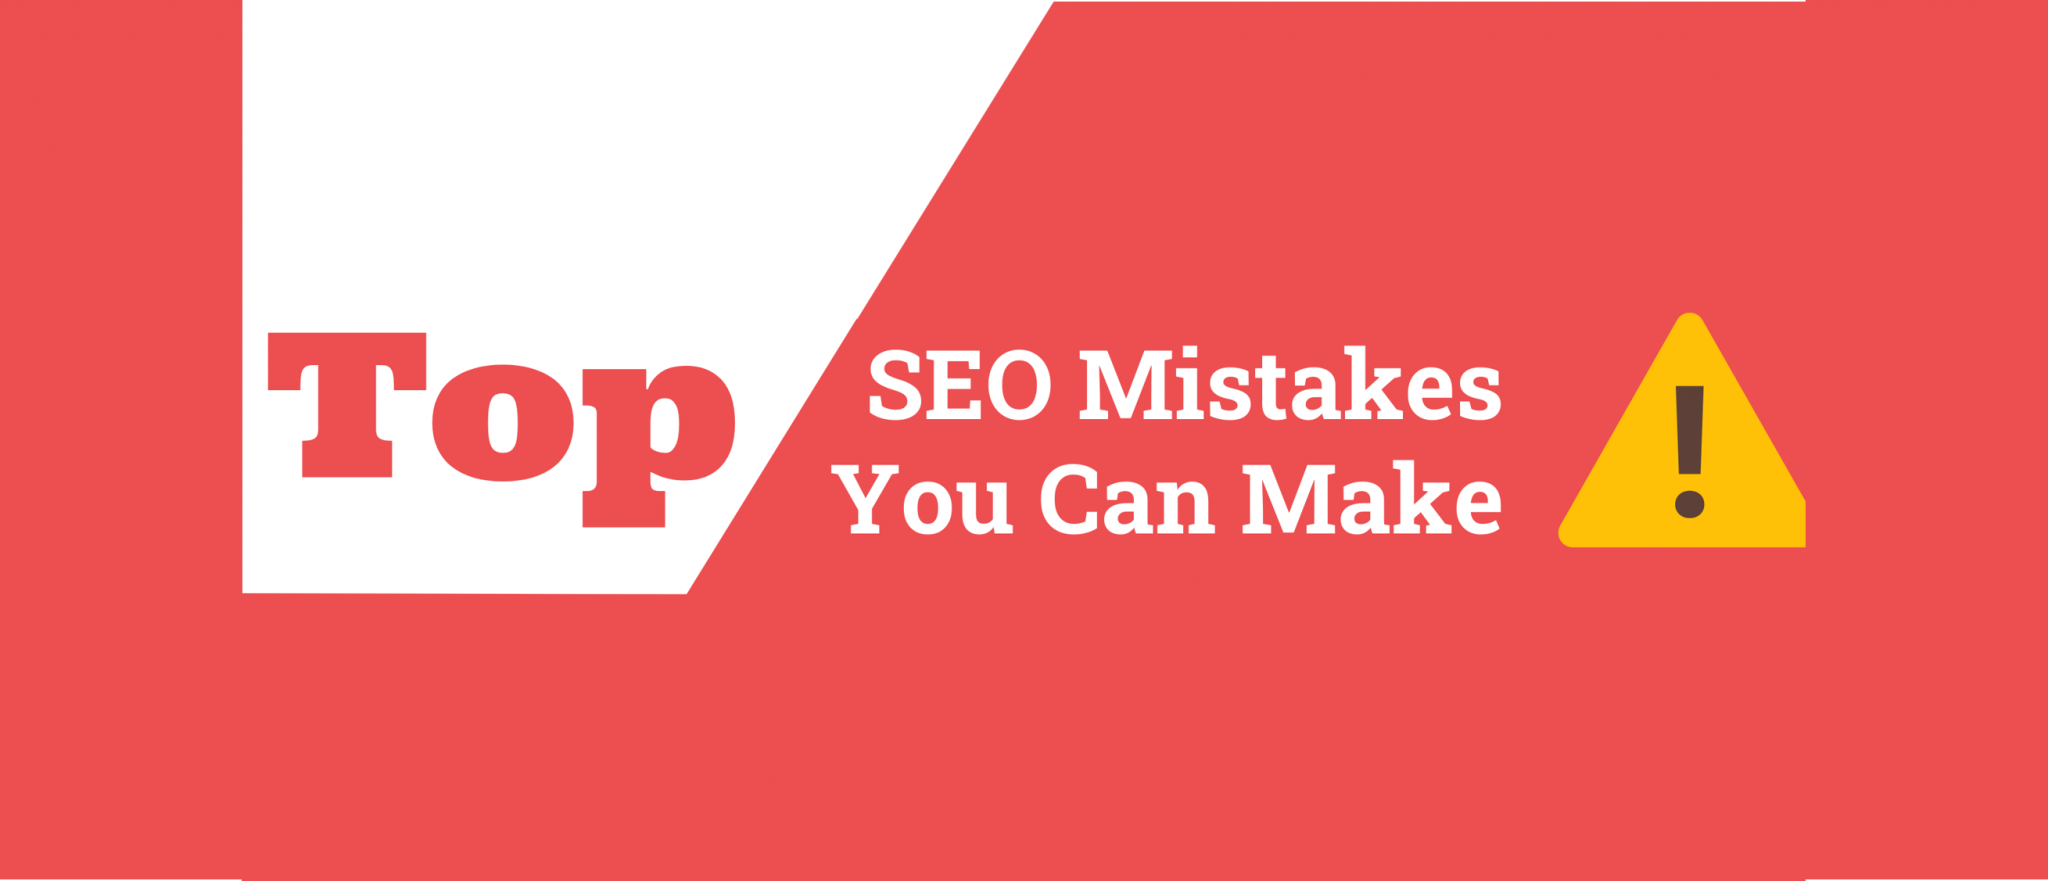 top seo mistakes you can make header